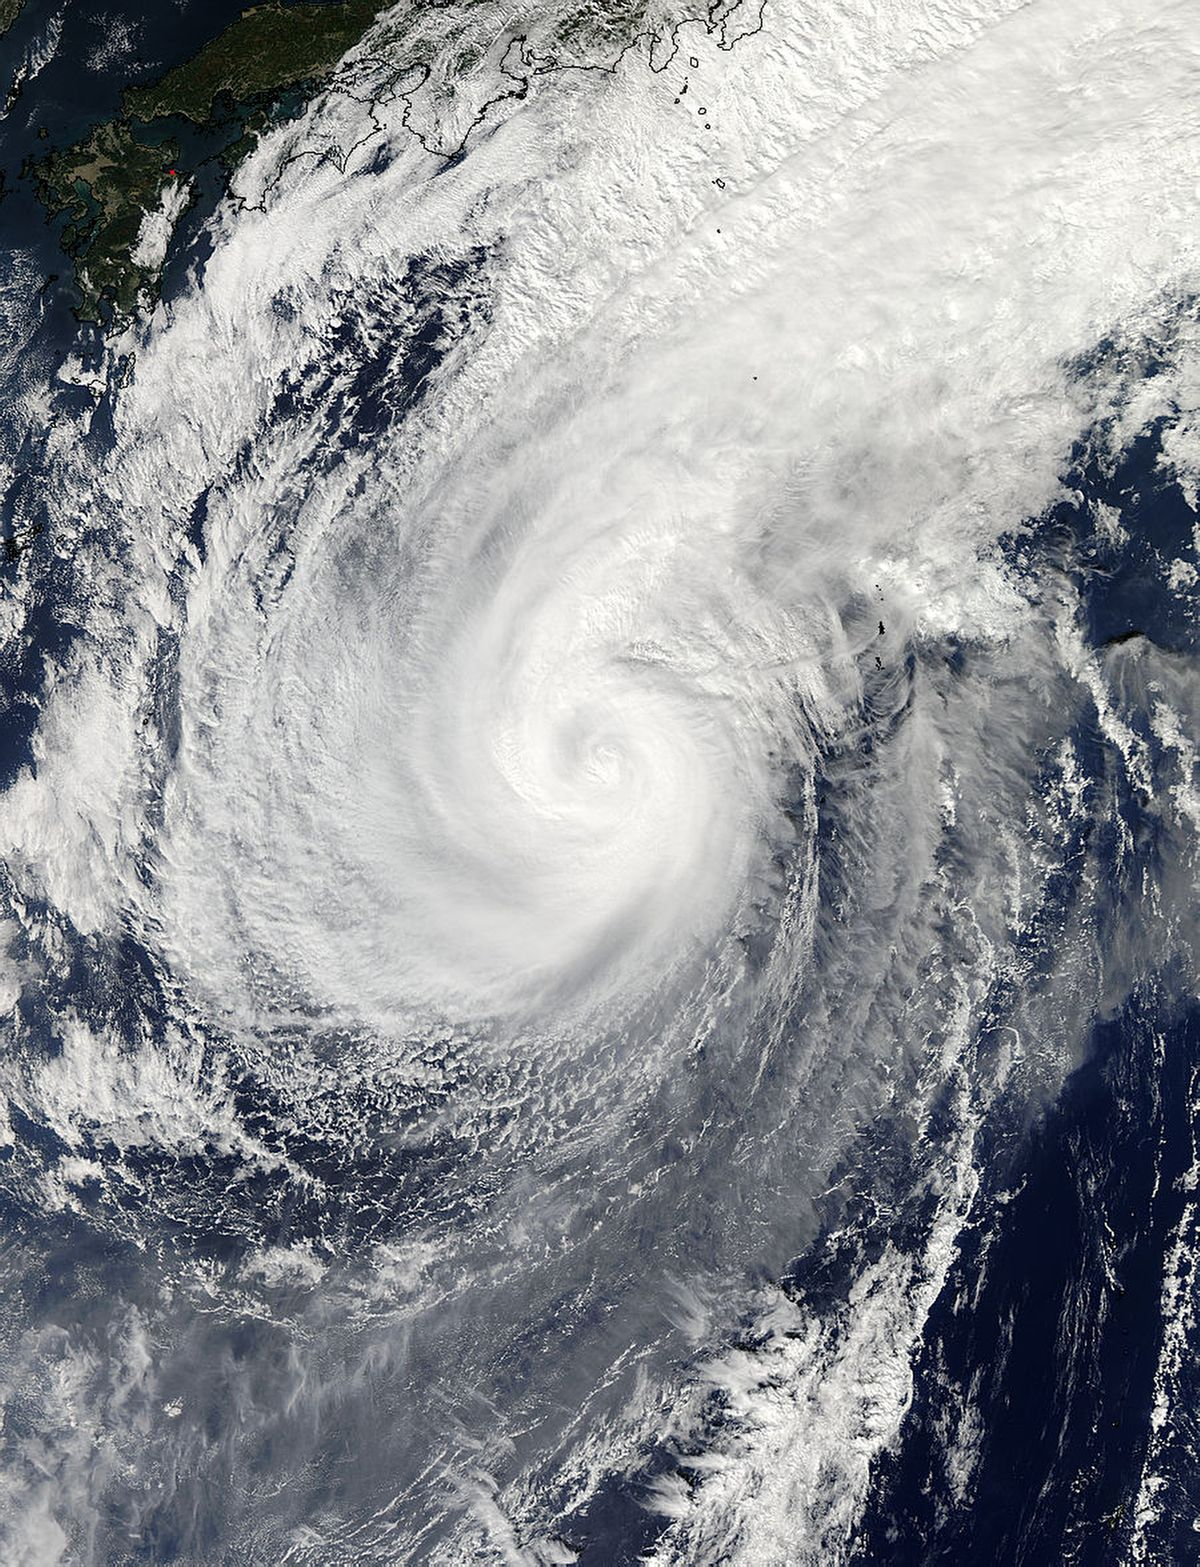 This Nov. 5, 2014 photo provided by NASA shows a picture captured by NASA's Aqua satellite of Typhoon Nuri. Weather forecasters say an explosive storm, a remnant of Typhoon Nuri, surpassing the intensity of 2012's Superstorm Sandy is heading toward the northern Pacific Ocean and expected to pass Alaska's Aleutian Islands over the weekend.   (AP/NASA)